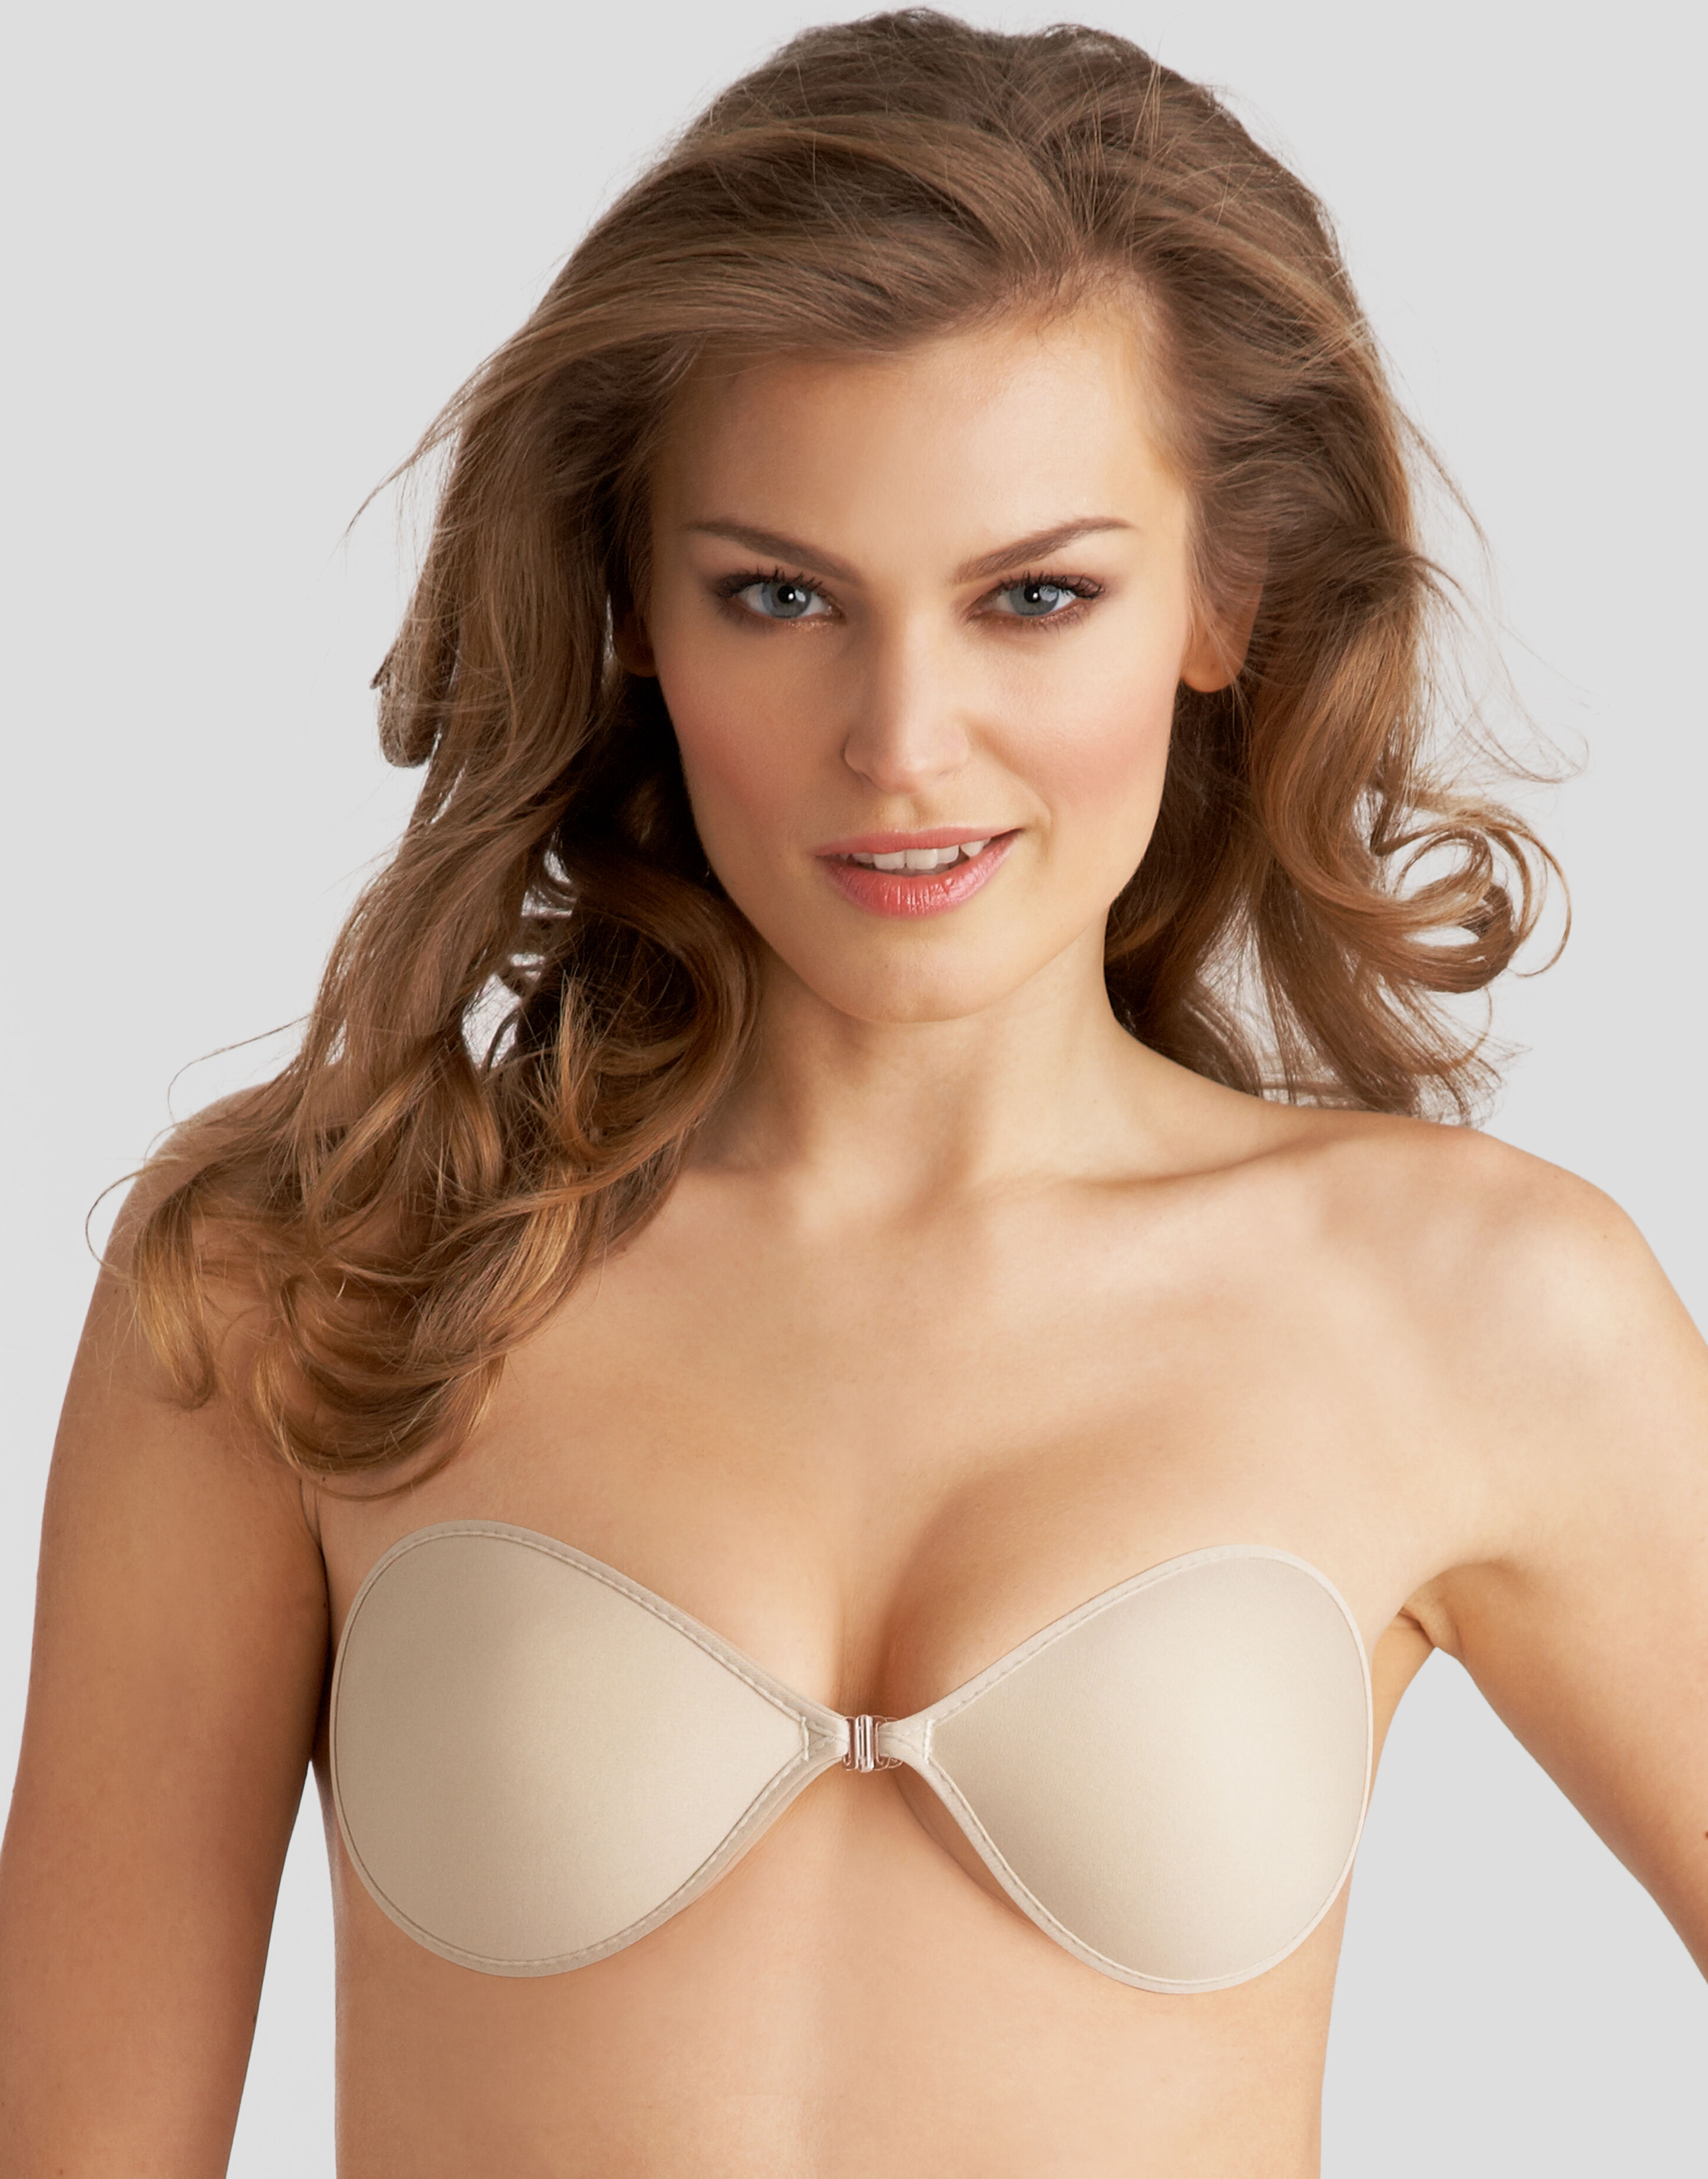 Fashion Forms Backless Strapless Ultralight Nu Bra | Fashion Forms ...